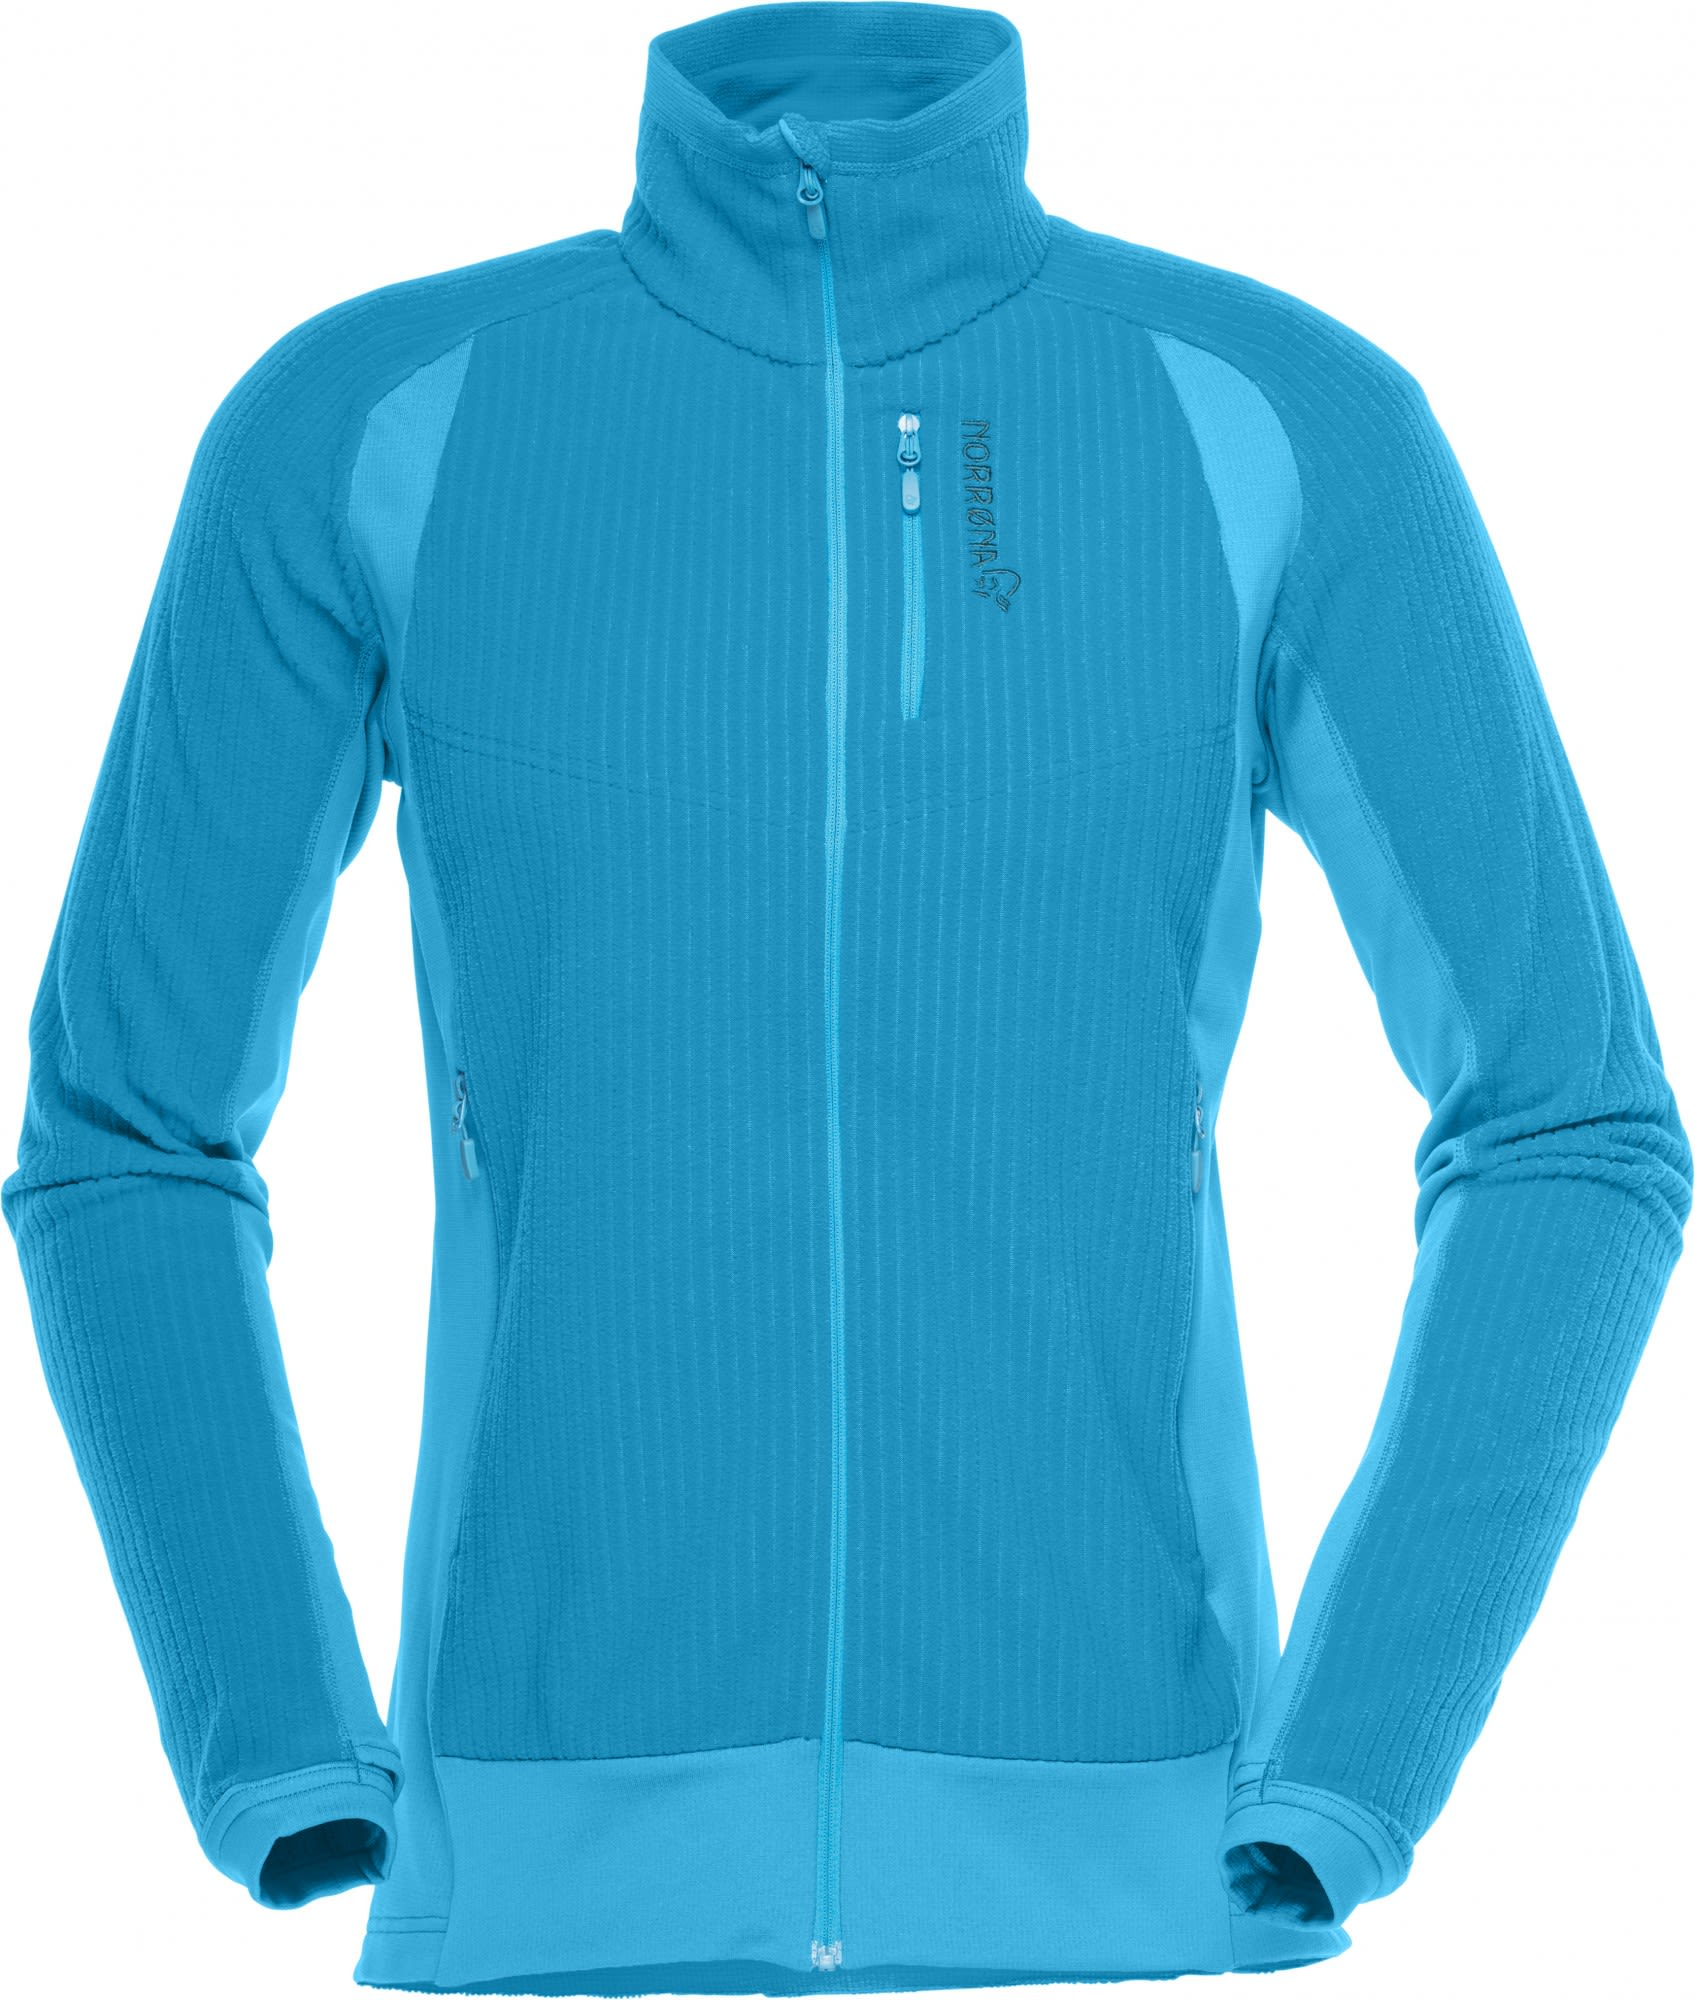 Norrona Lofoten Warm1 Jacket Blau, Female Fleecejacke, M